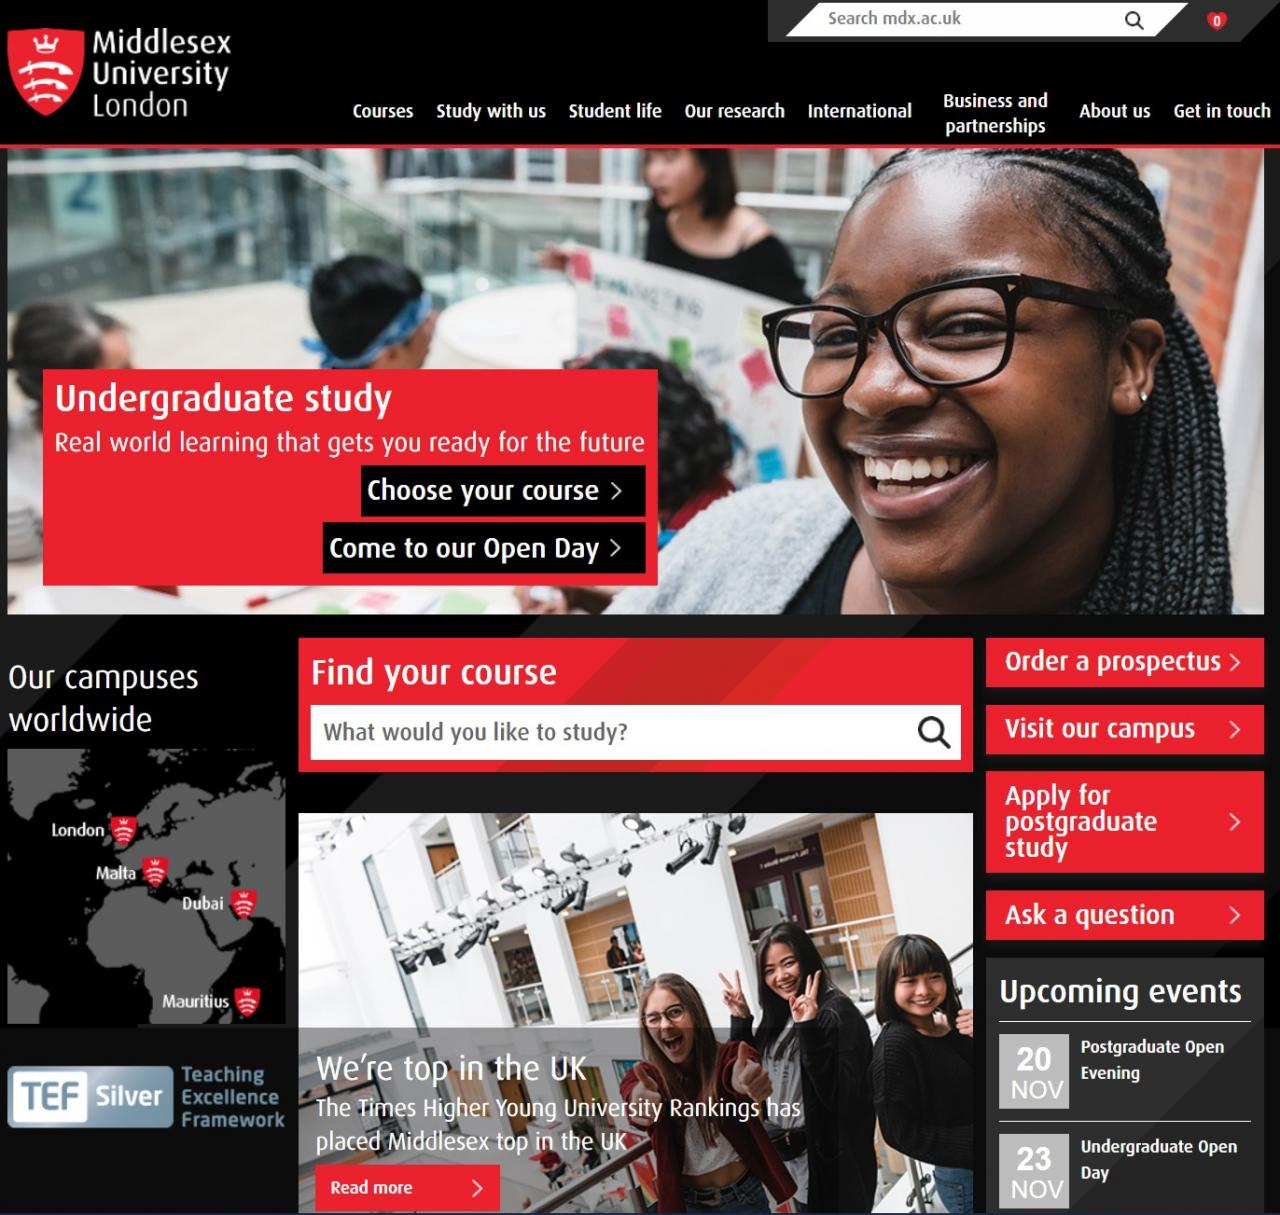 Middlesex university London home page